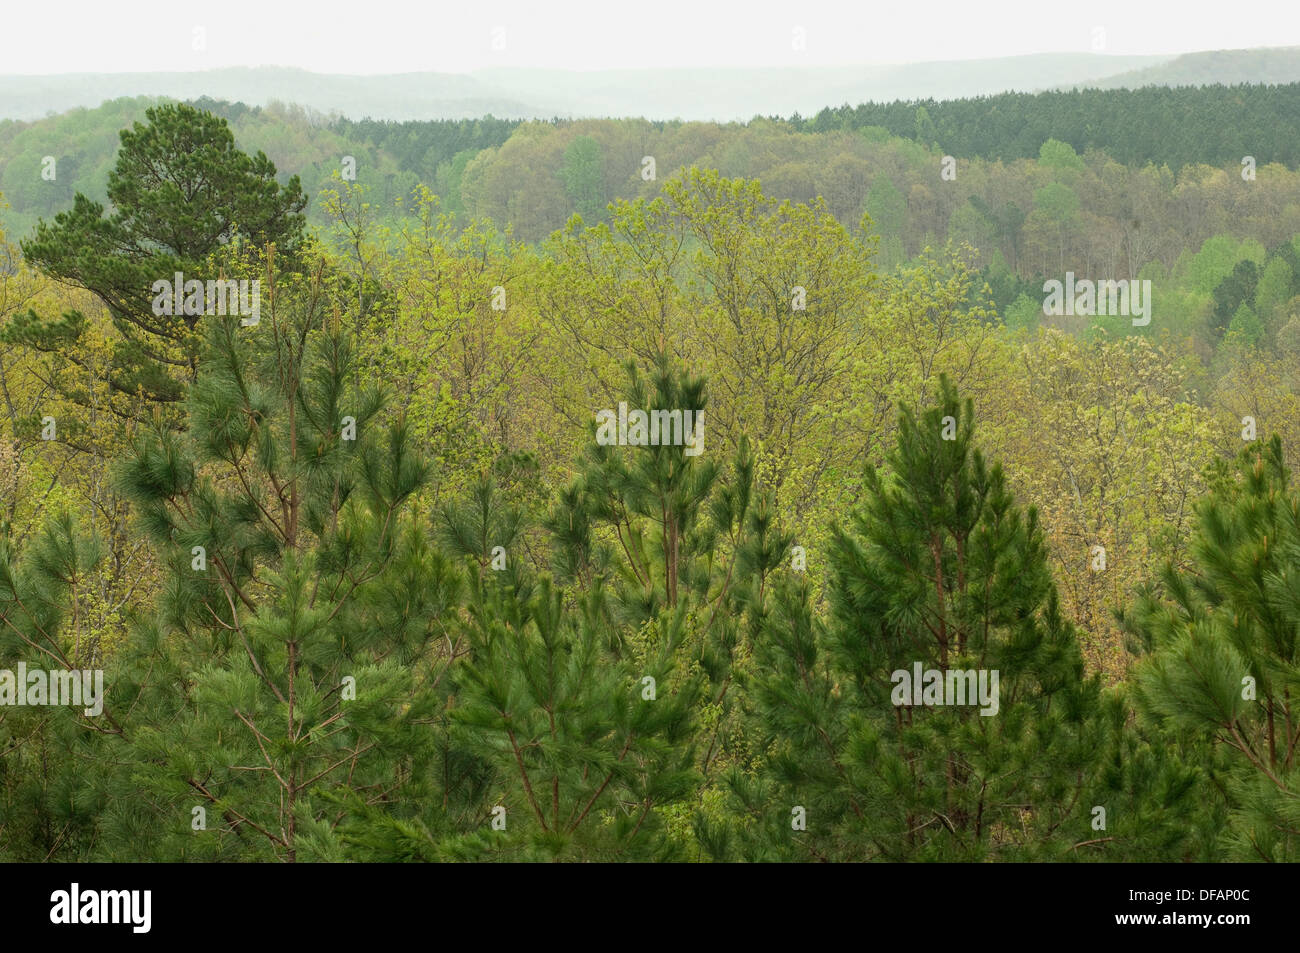 Freedom Hills spring forest, from the Natchez Trace in Alabama. Digital photograph - Stock Image